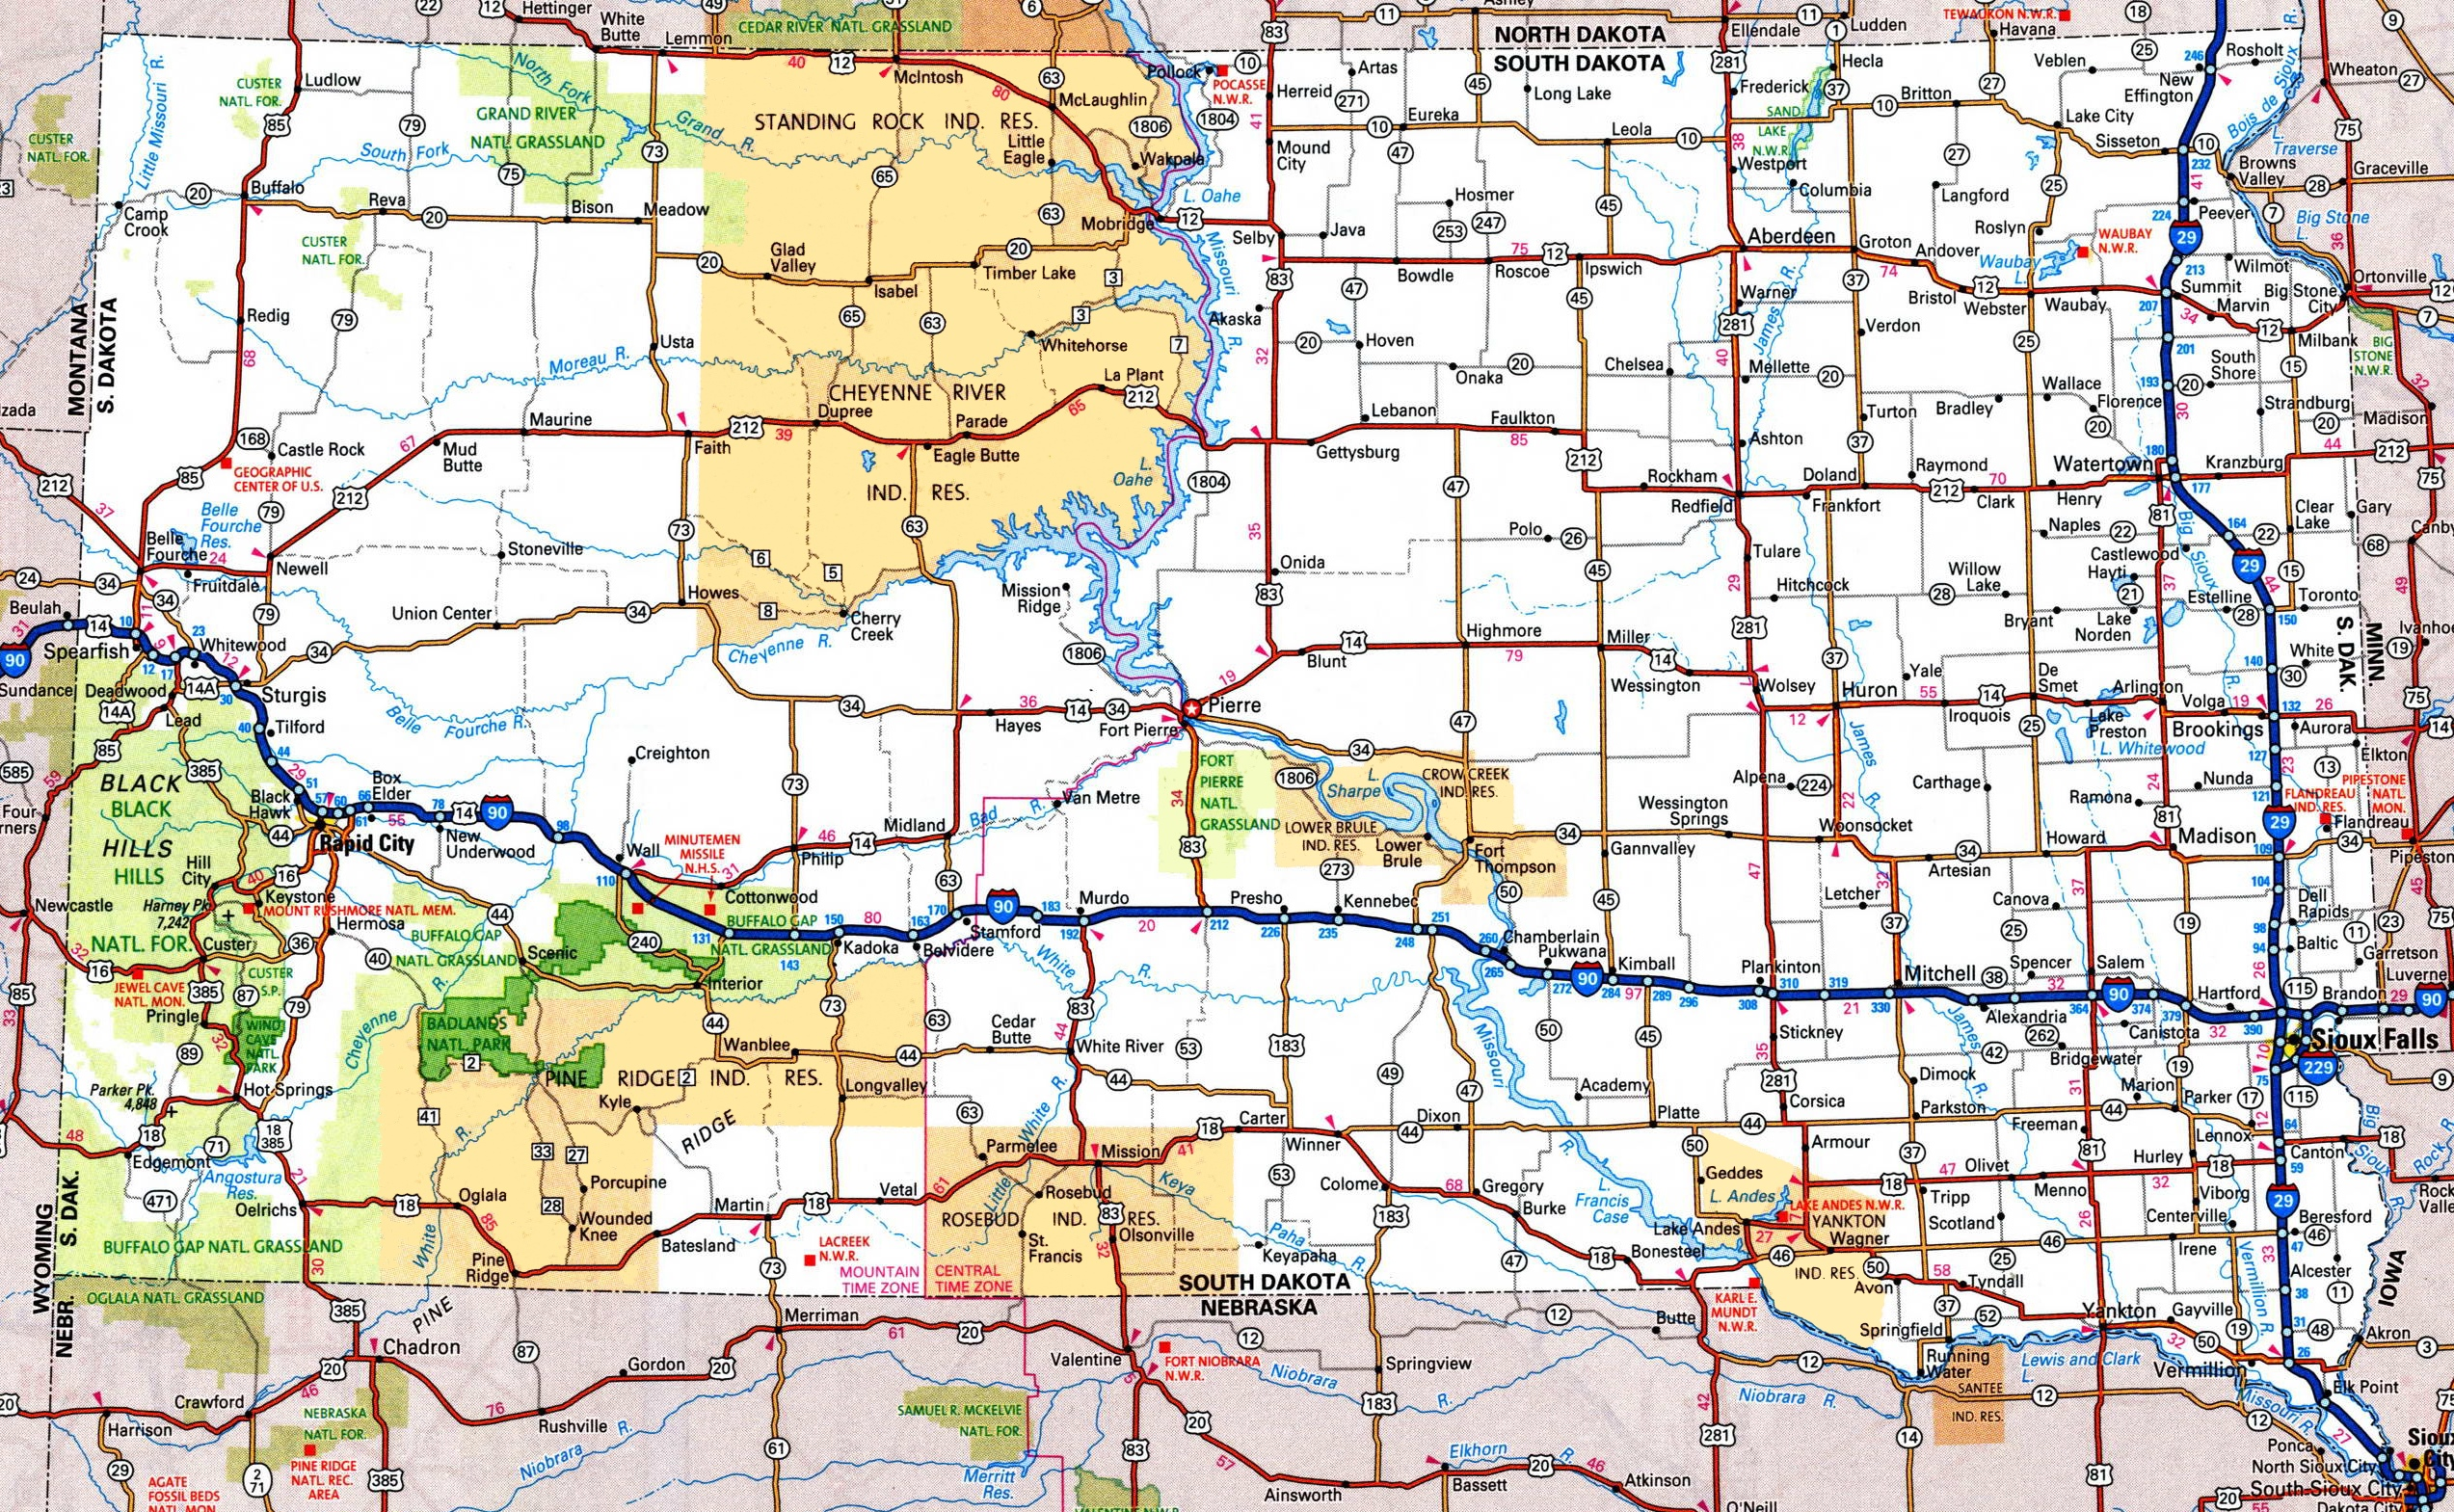 South Dakota road map